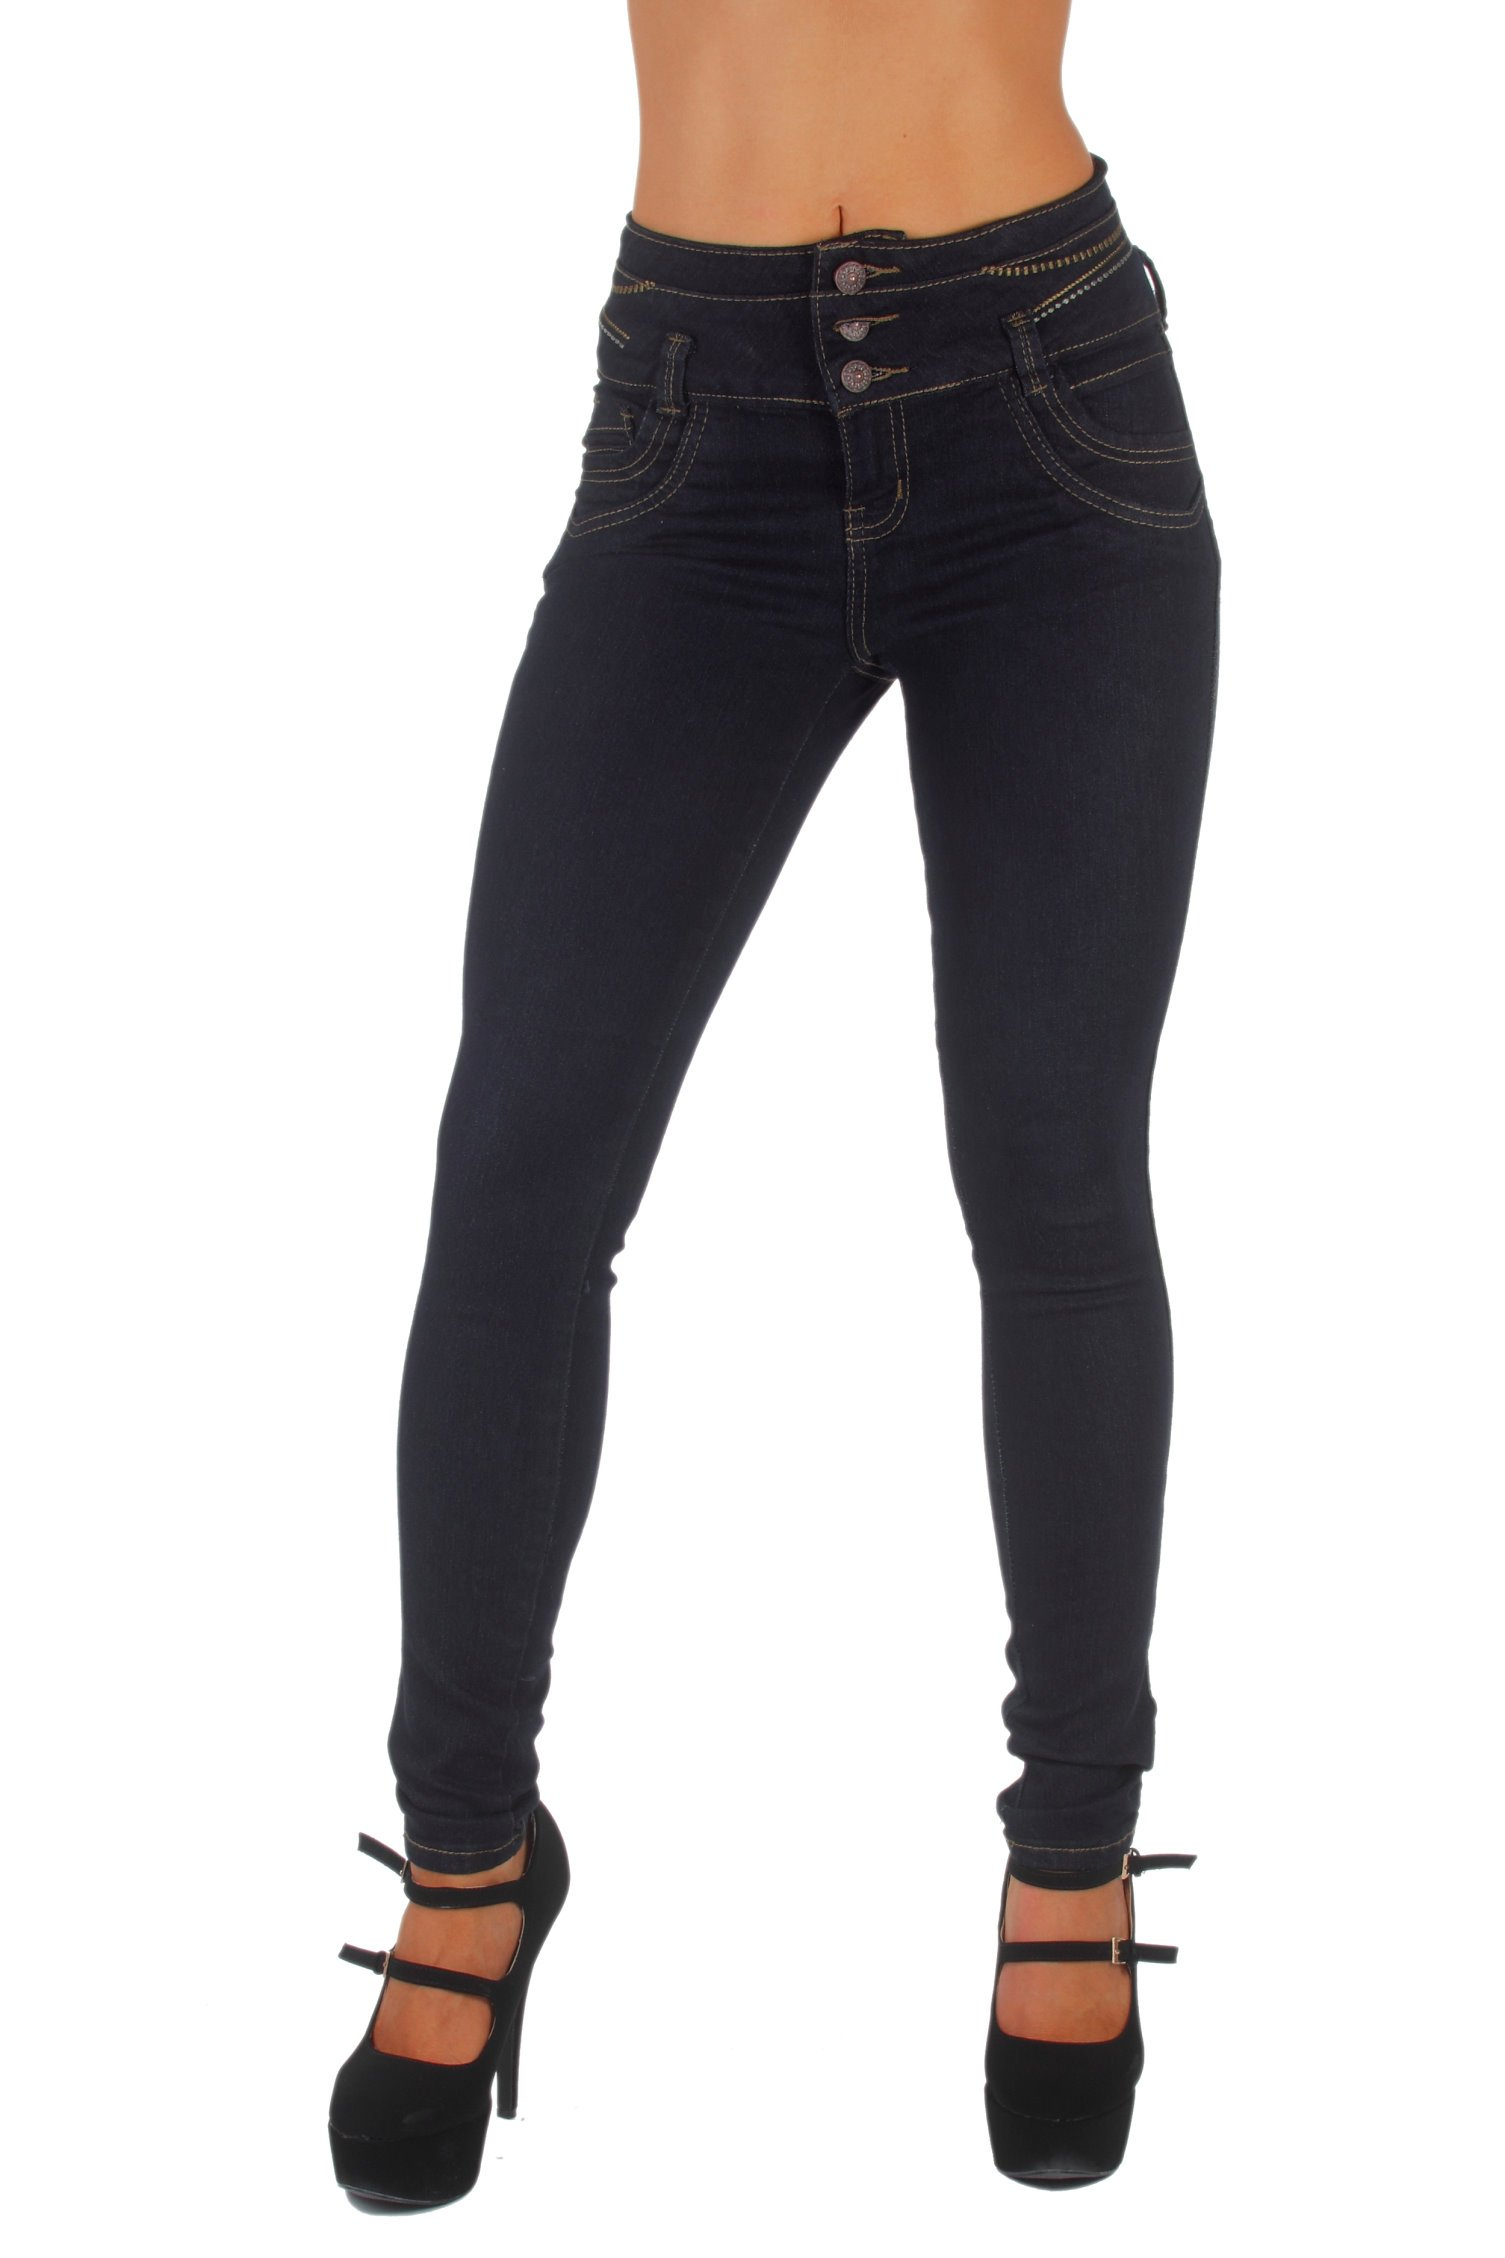 Style G536– Colombian Design, High Waist, Butt Lift, Levanta Cola, Skinny Jeans in Black Size 15